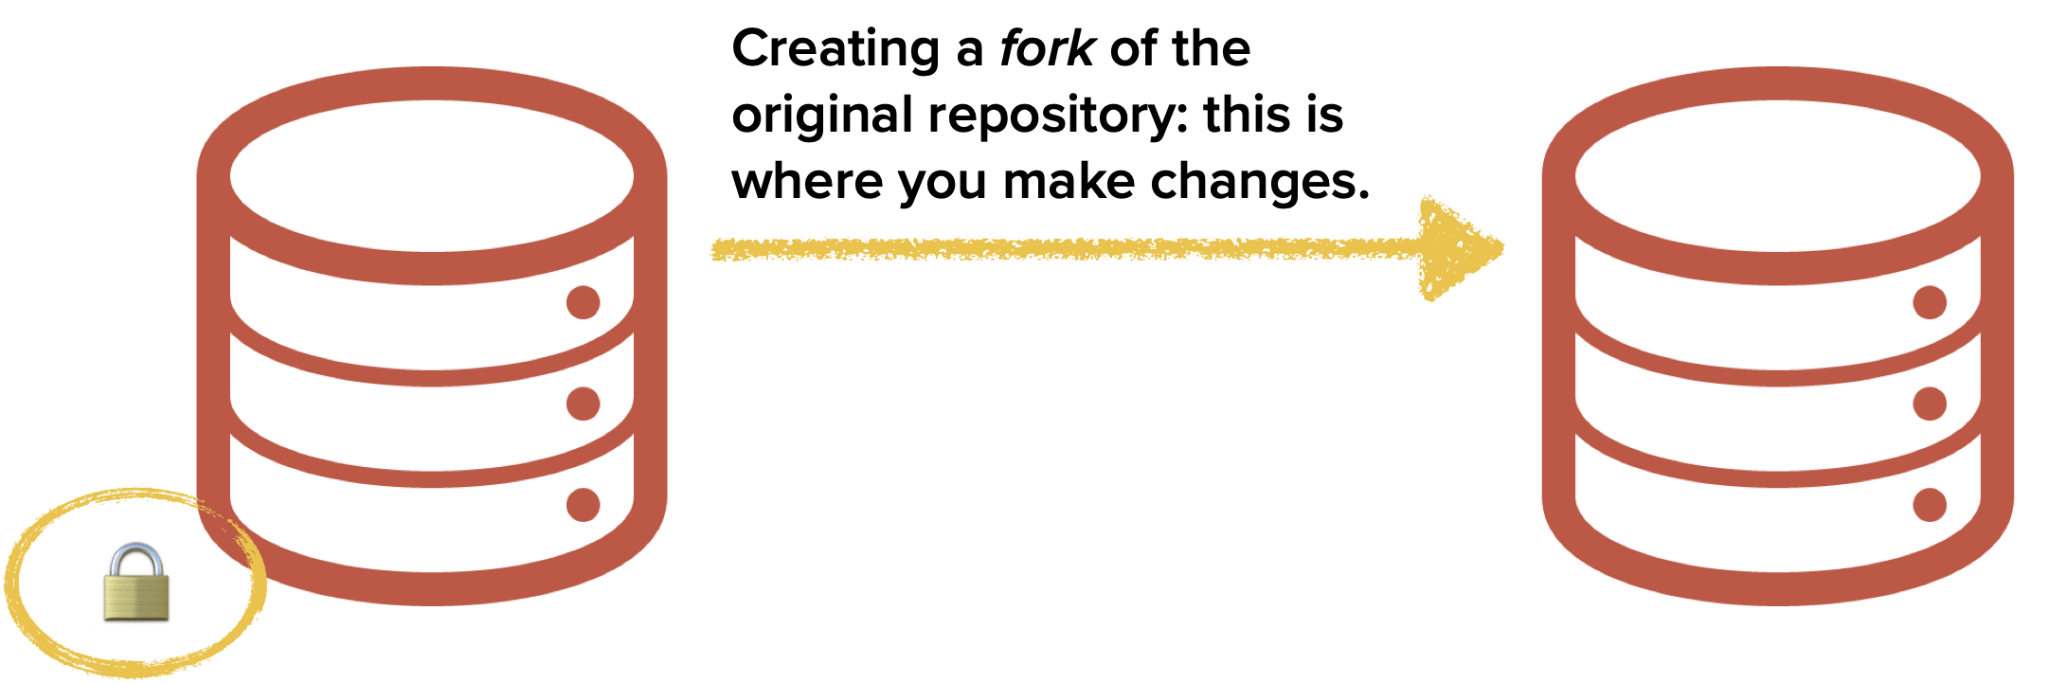 Creating a fork of the original respository is where you make changes.